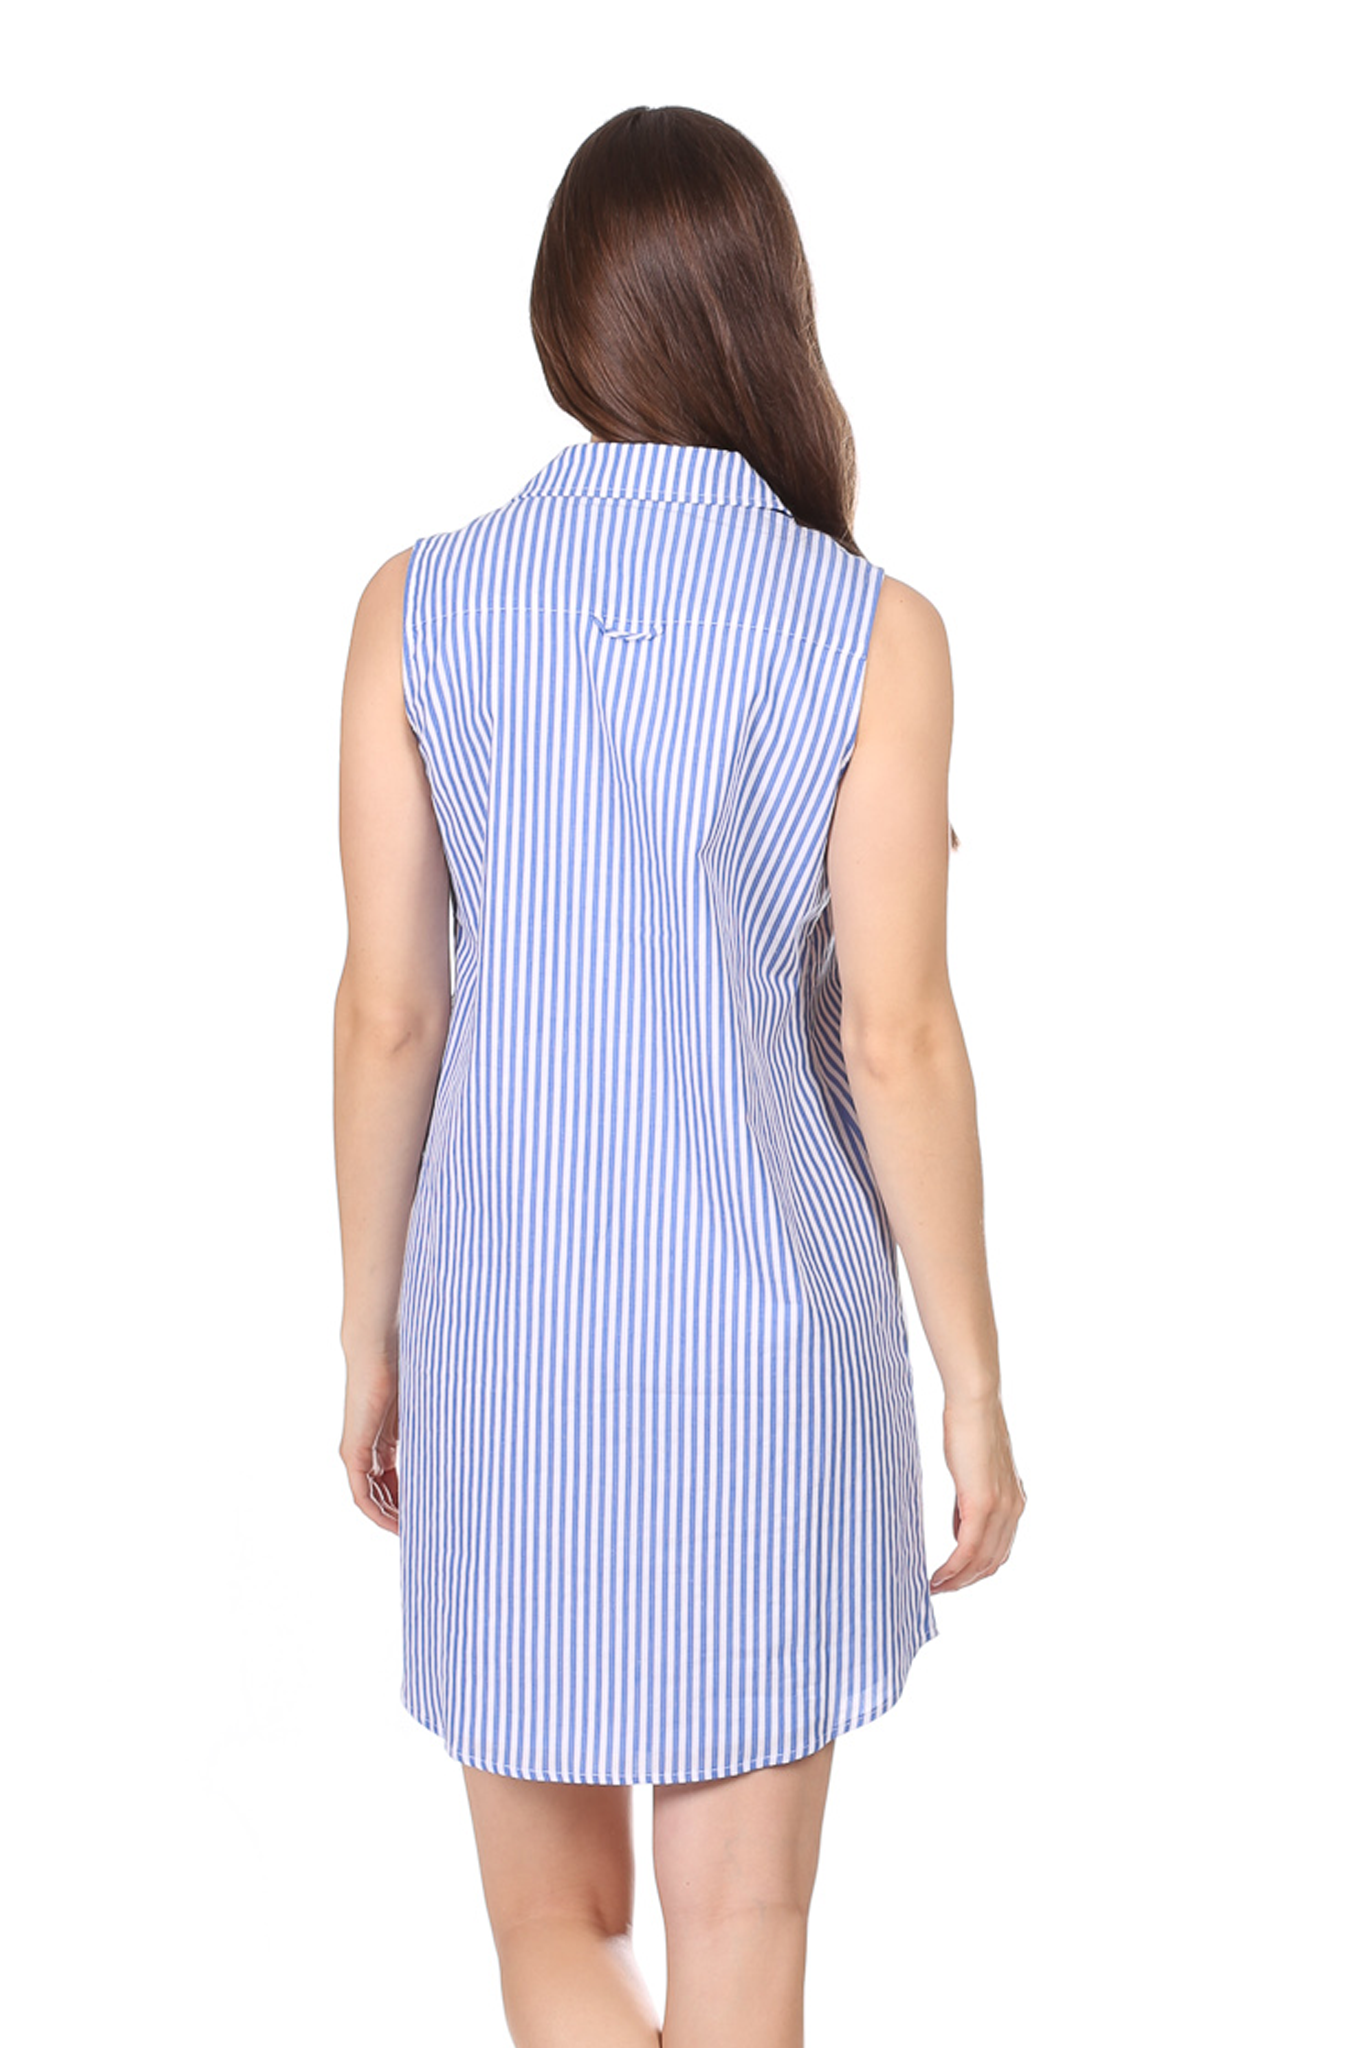 Duffield Lane Lauren Dress - Royal Blue Stripe